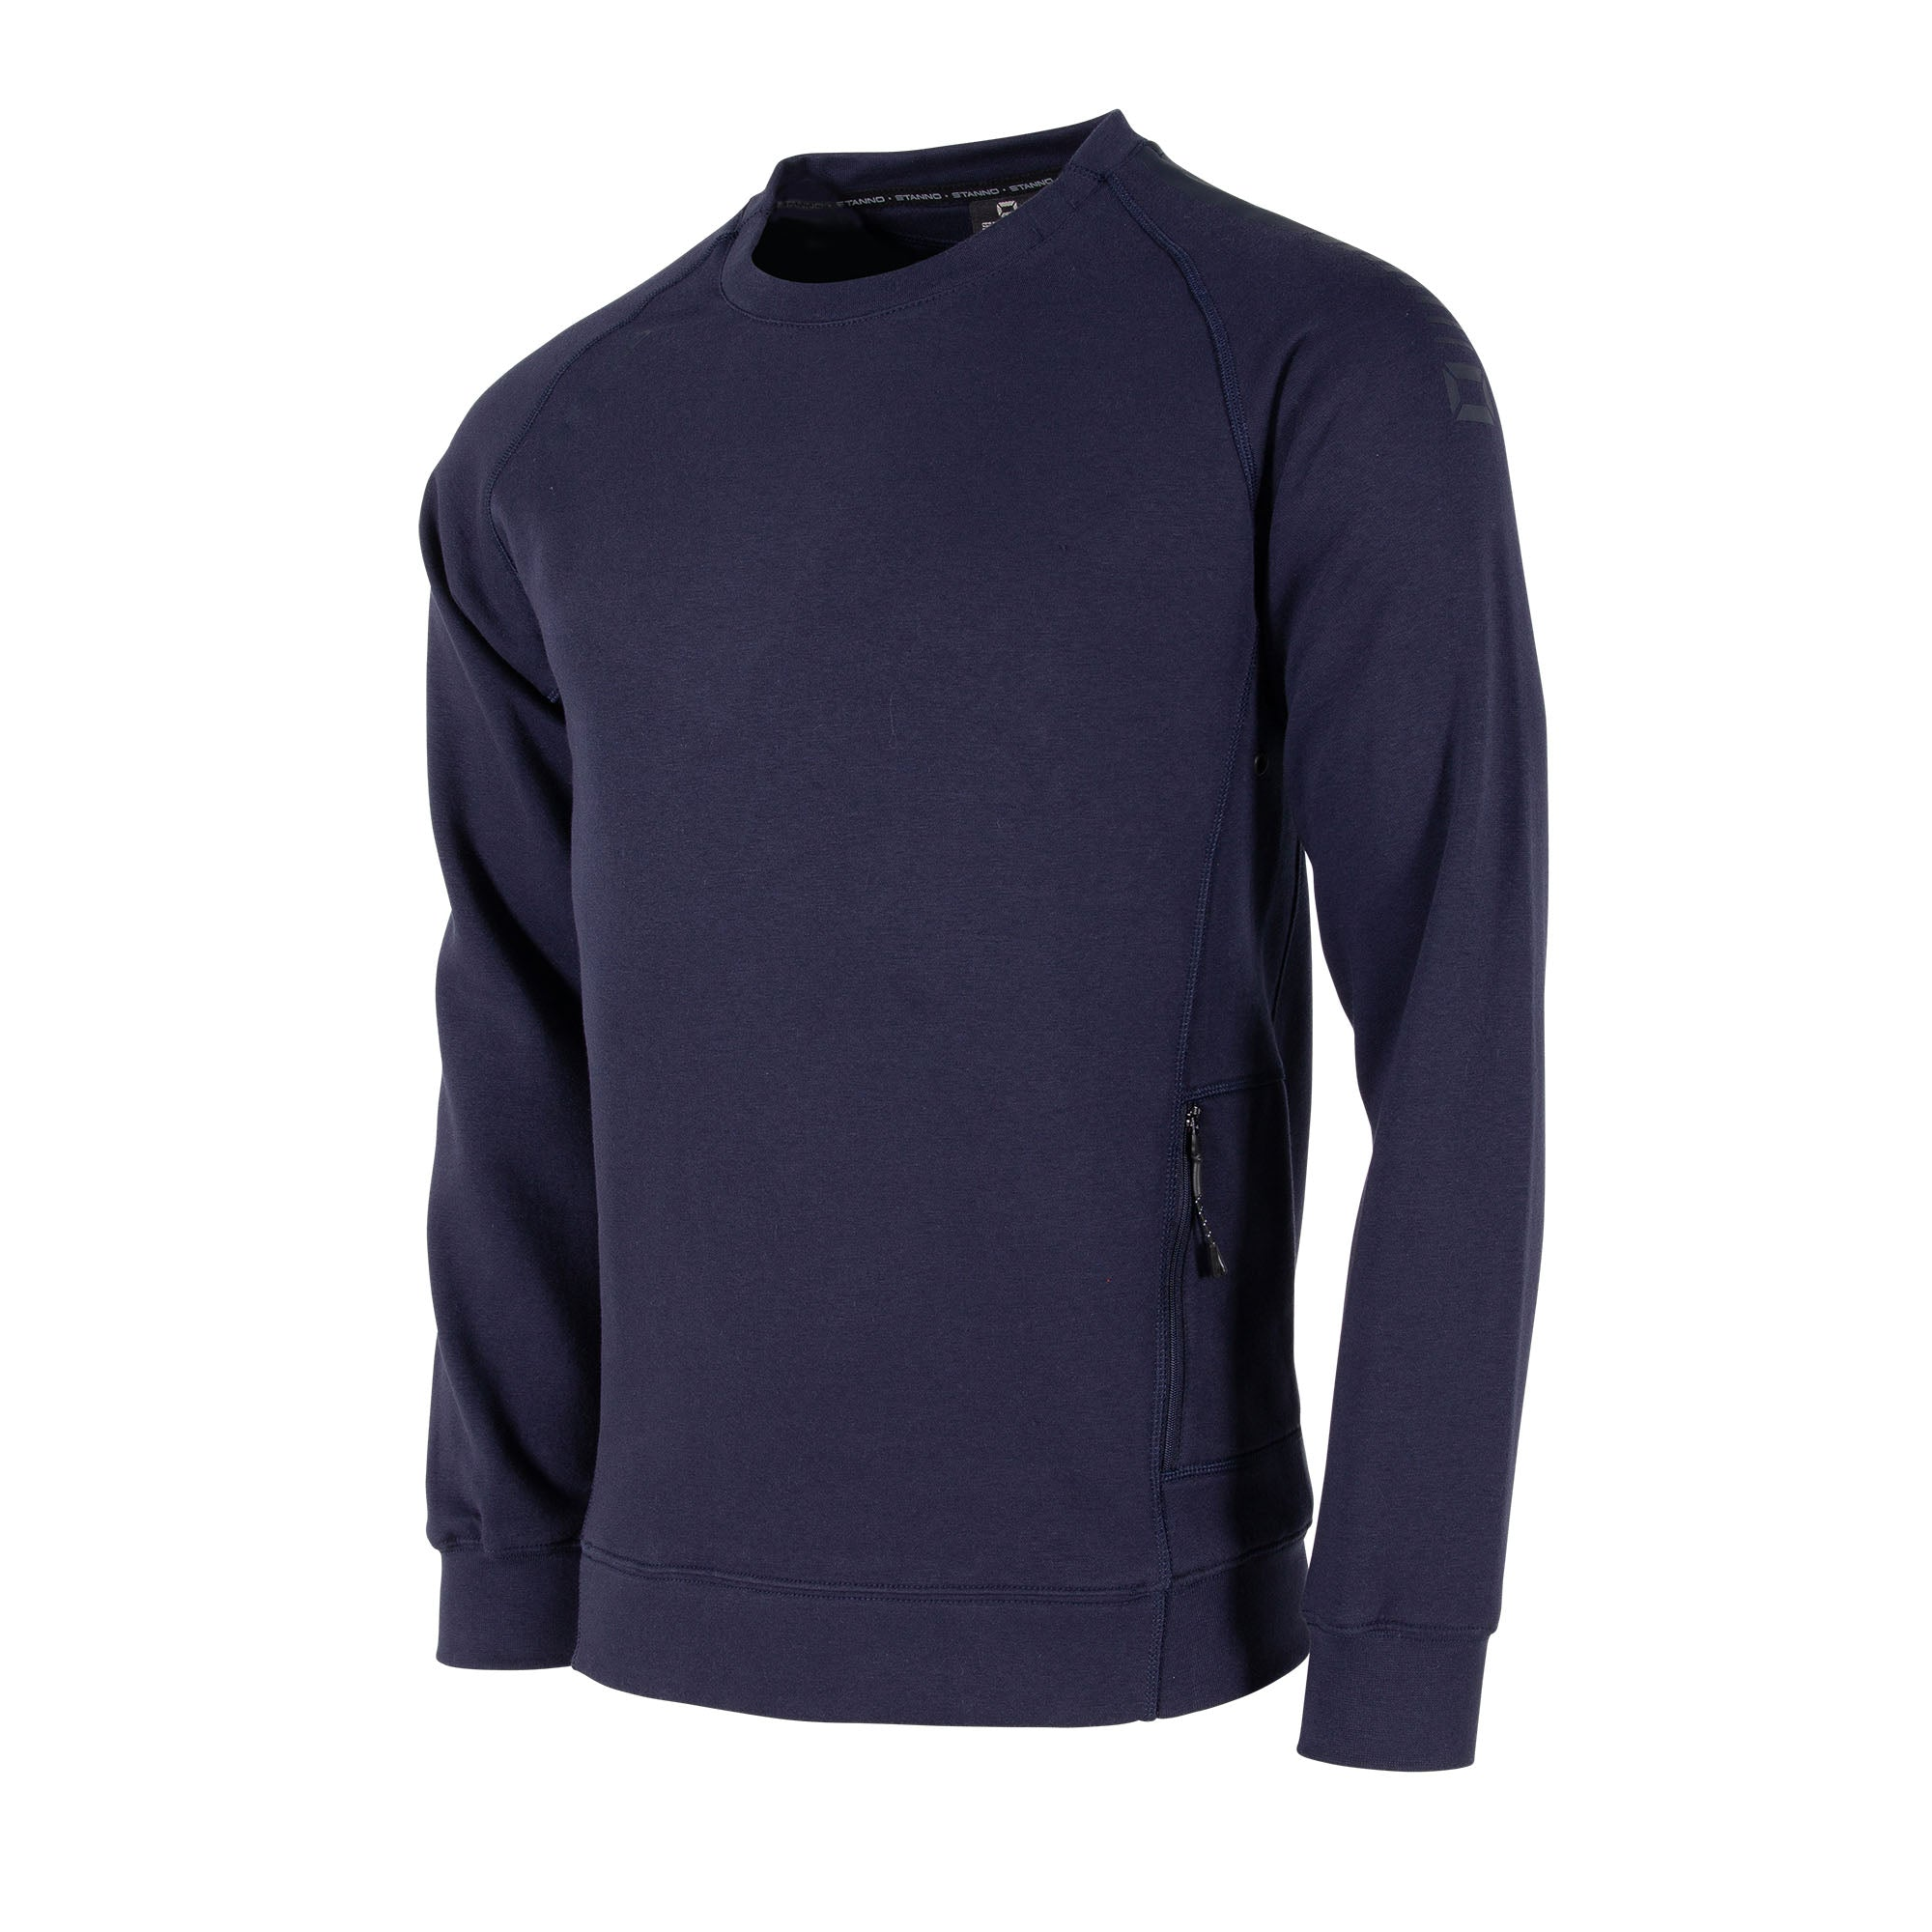 Front view of Stanno Ease crewneck in navy with raglan sleeve. Printed logo on shoulder